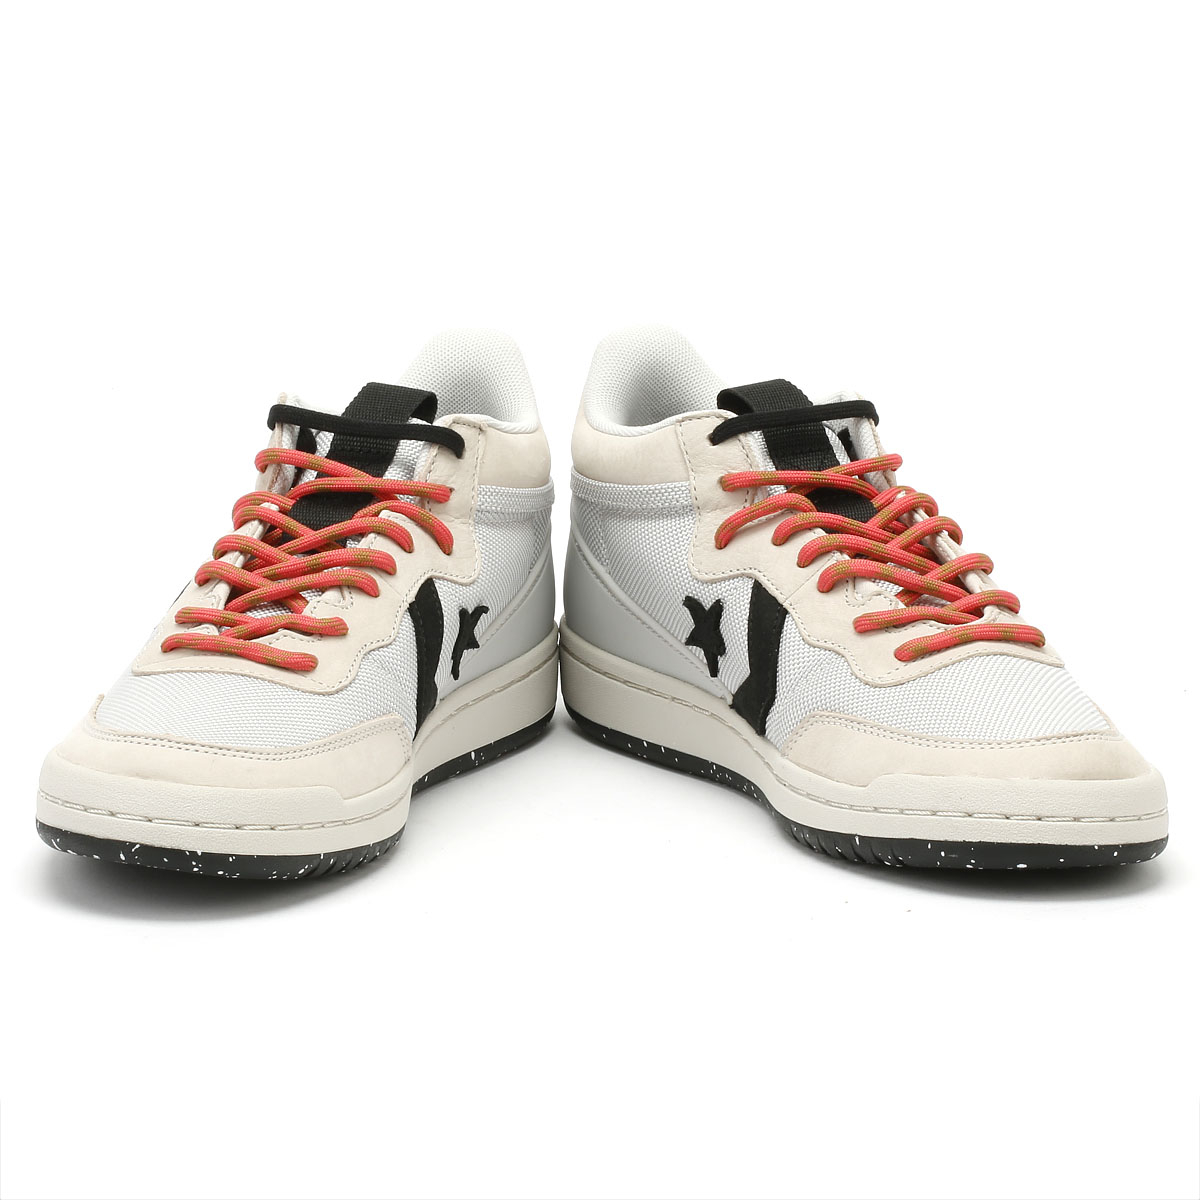 Converse Fastbreak Mens Trainers Pale Putty Mid Sport Casual Skate Shoes 4e3f6bf43